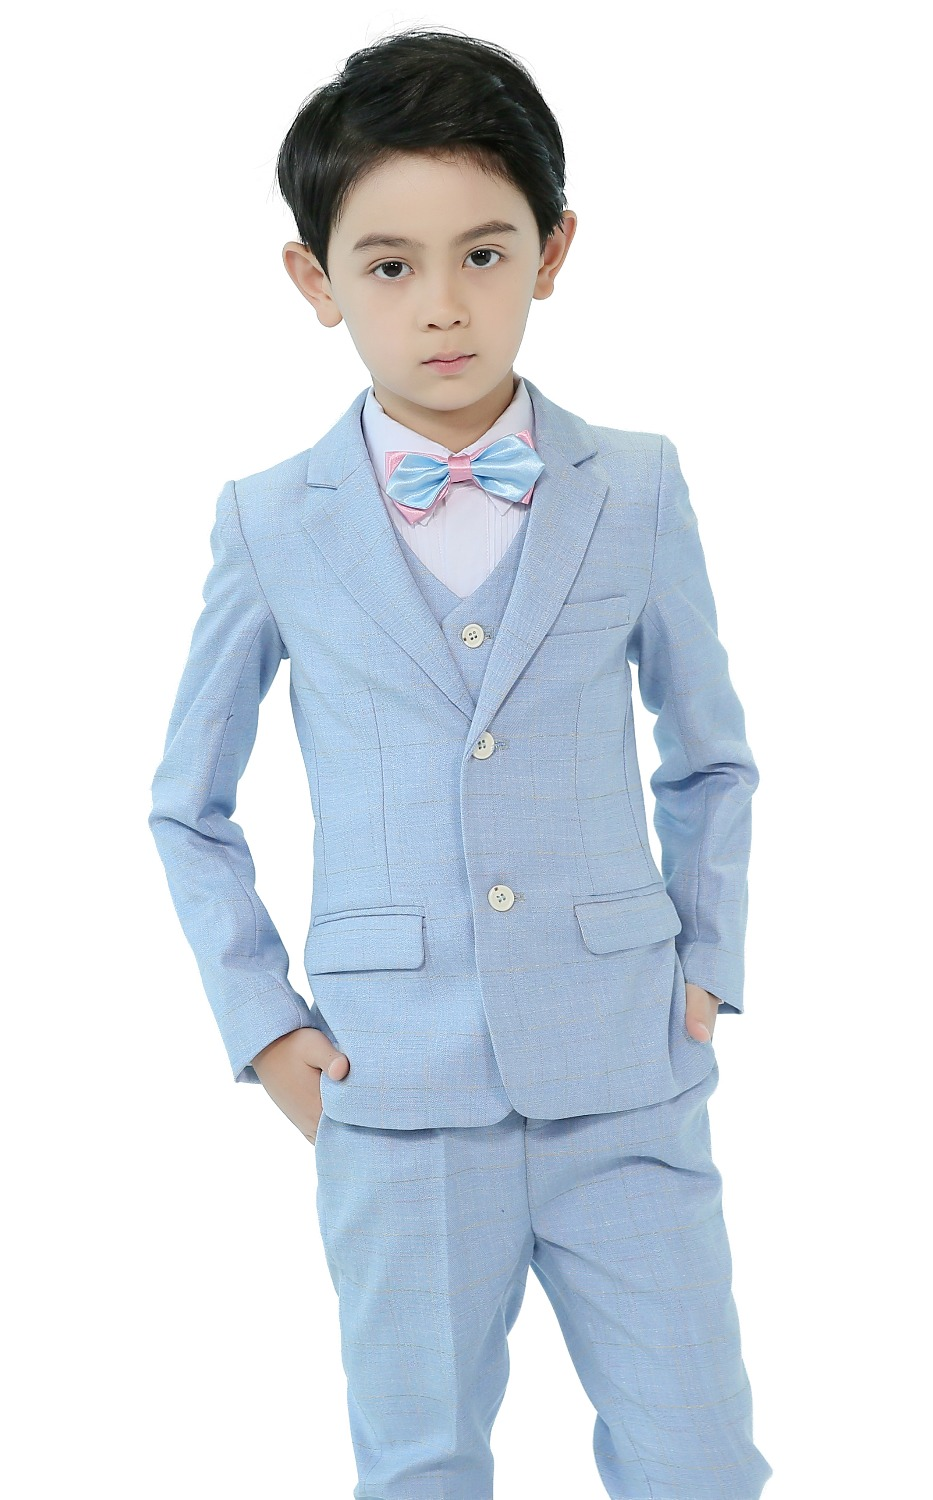 5 Piece Boys Suits Light Blue Slim Fit Ring Bearer Suit For Boys Formal Classic Costume Weddings цена 2017